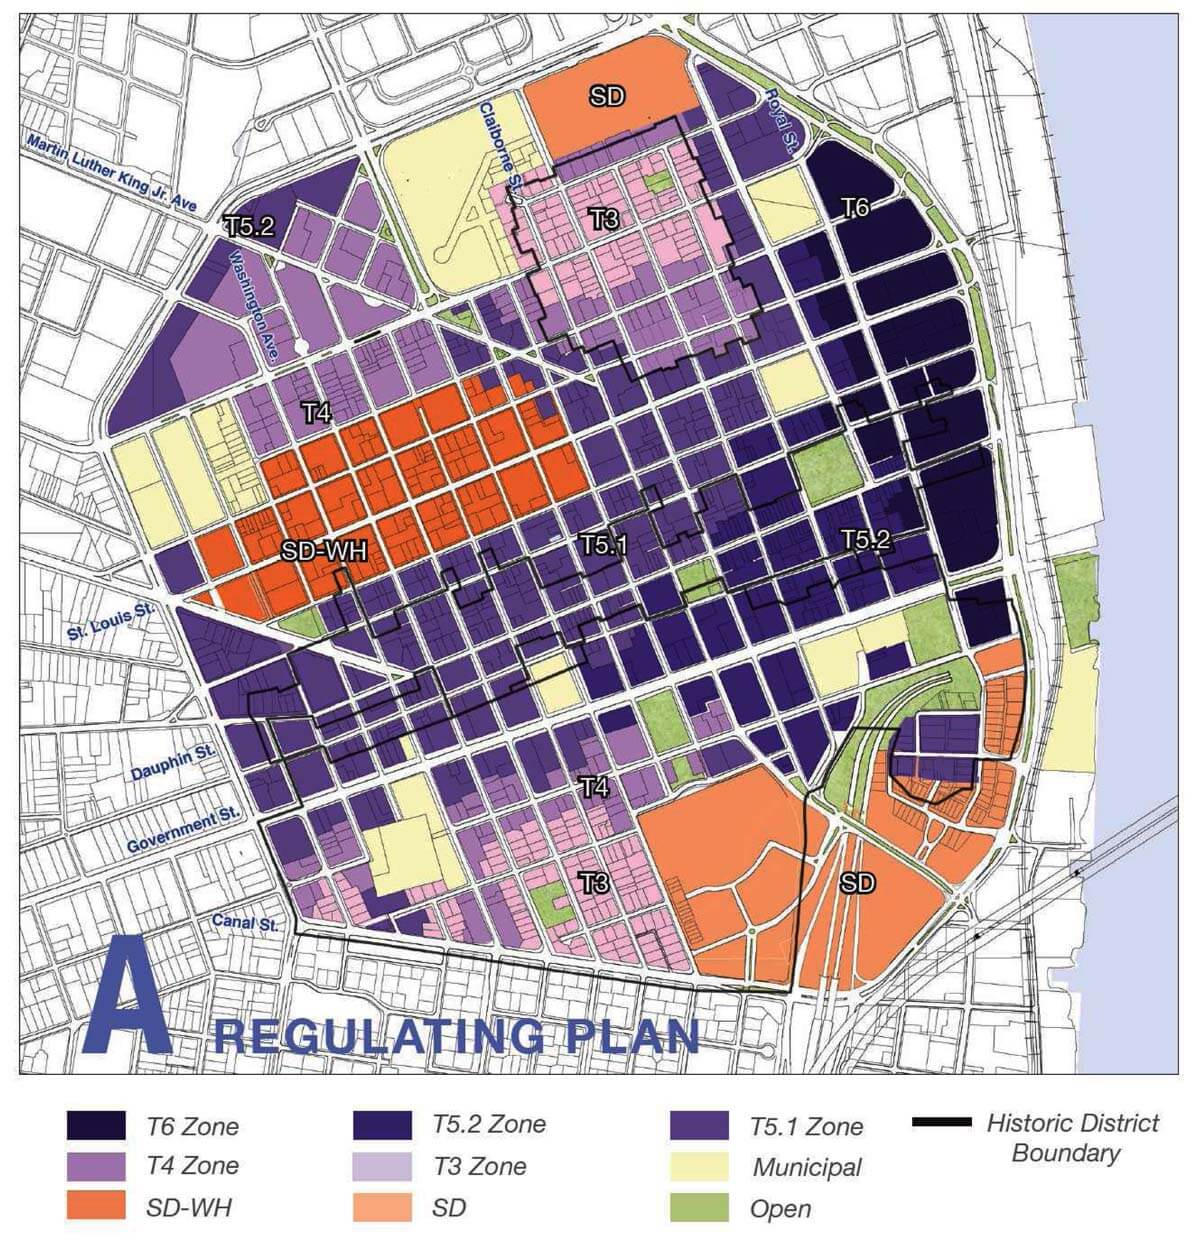 Proposed zoning changes alarm property owners in downtown historic district